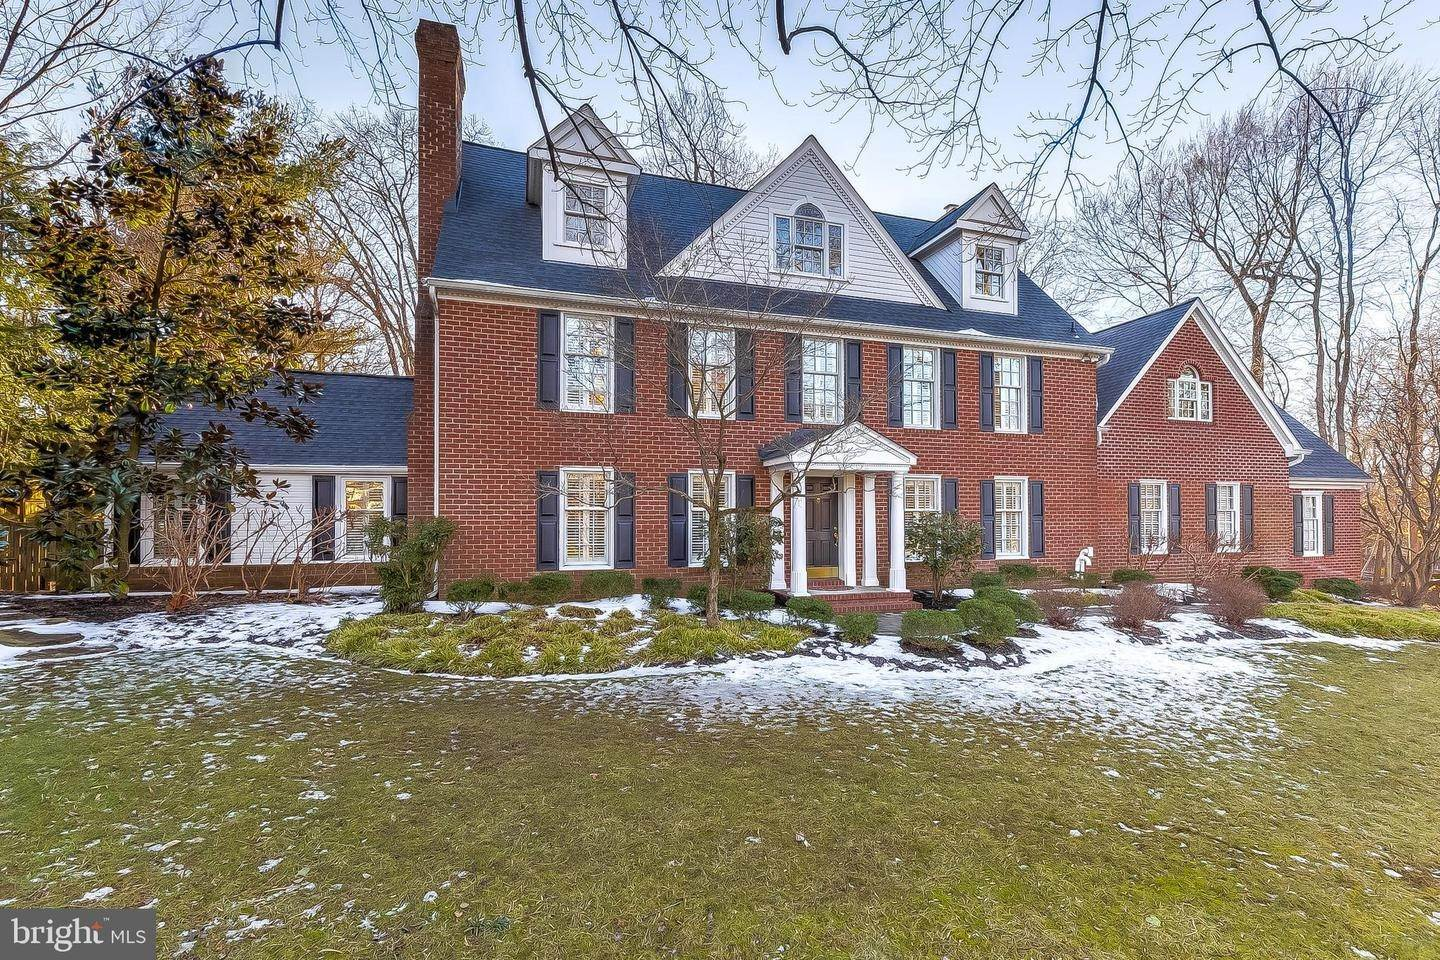 1. Single Family Homes om Severna Park, Maryland, 21146 Verenigde Staten